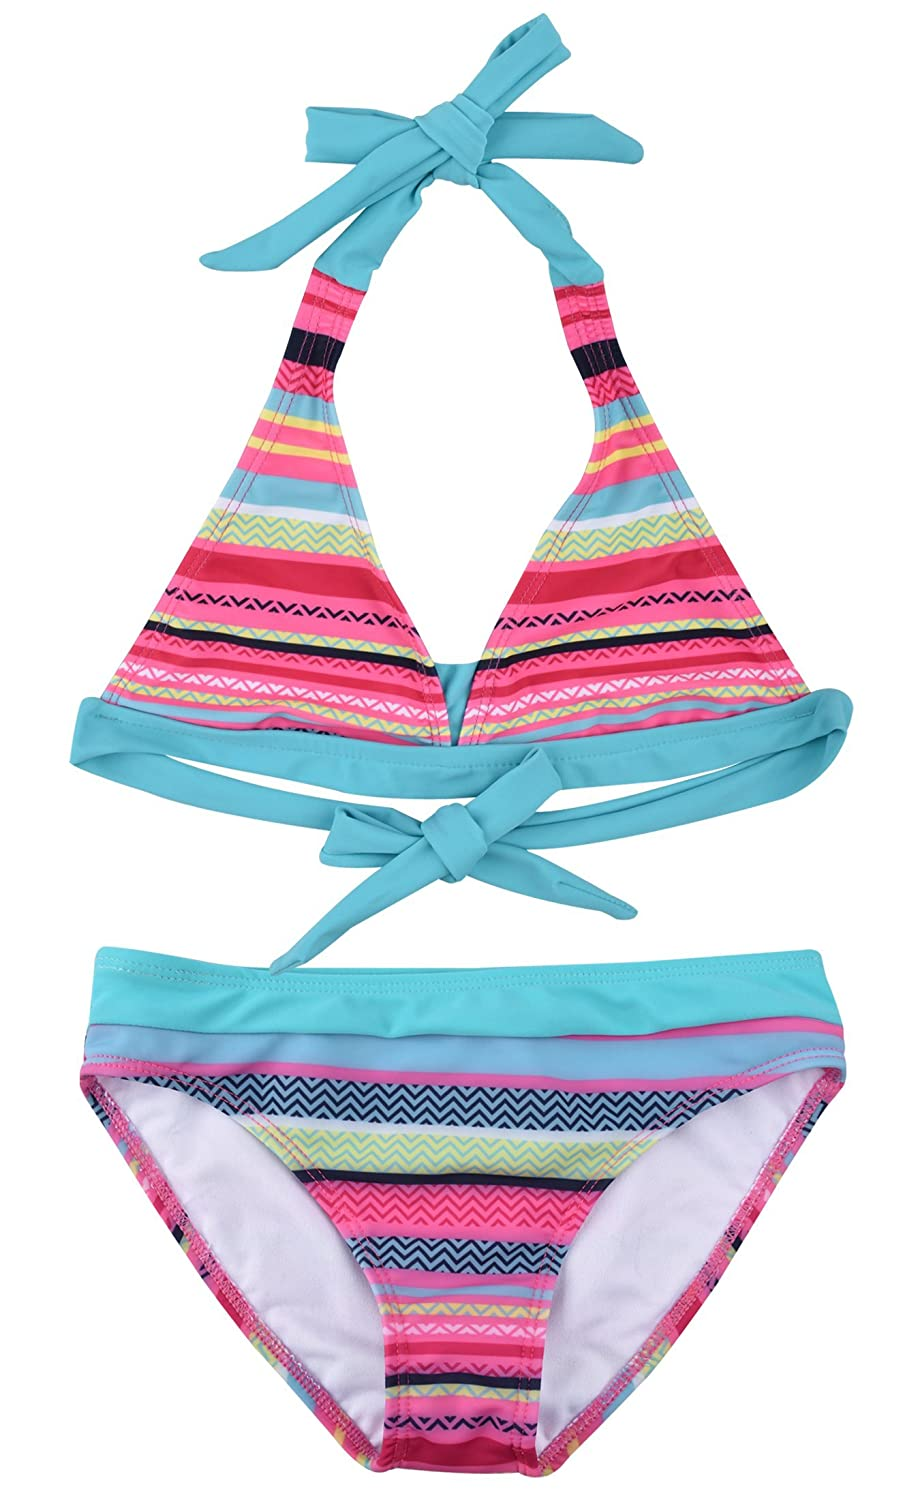 ZOEREA Little Girls Bikinis Two Piece Sets Tankini Swimwear Swimsuit Stripe YS2388